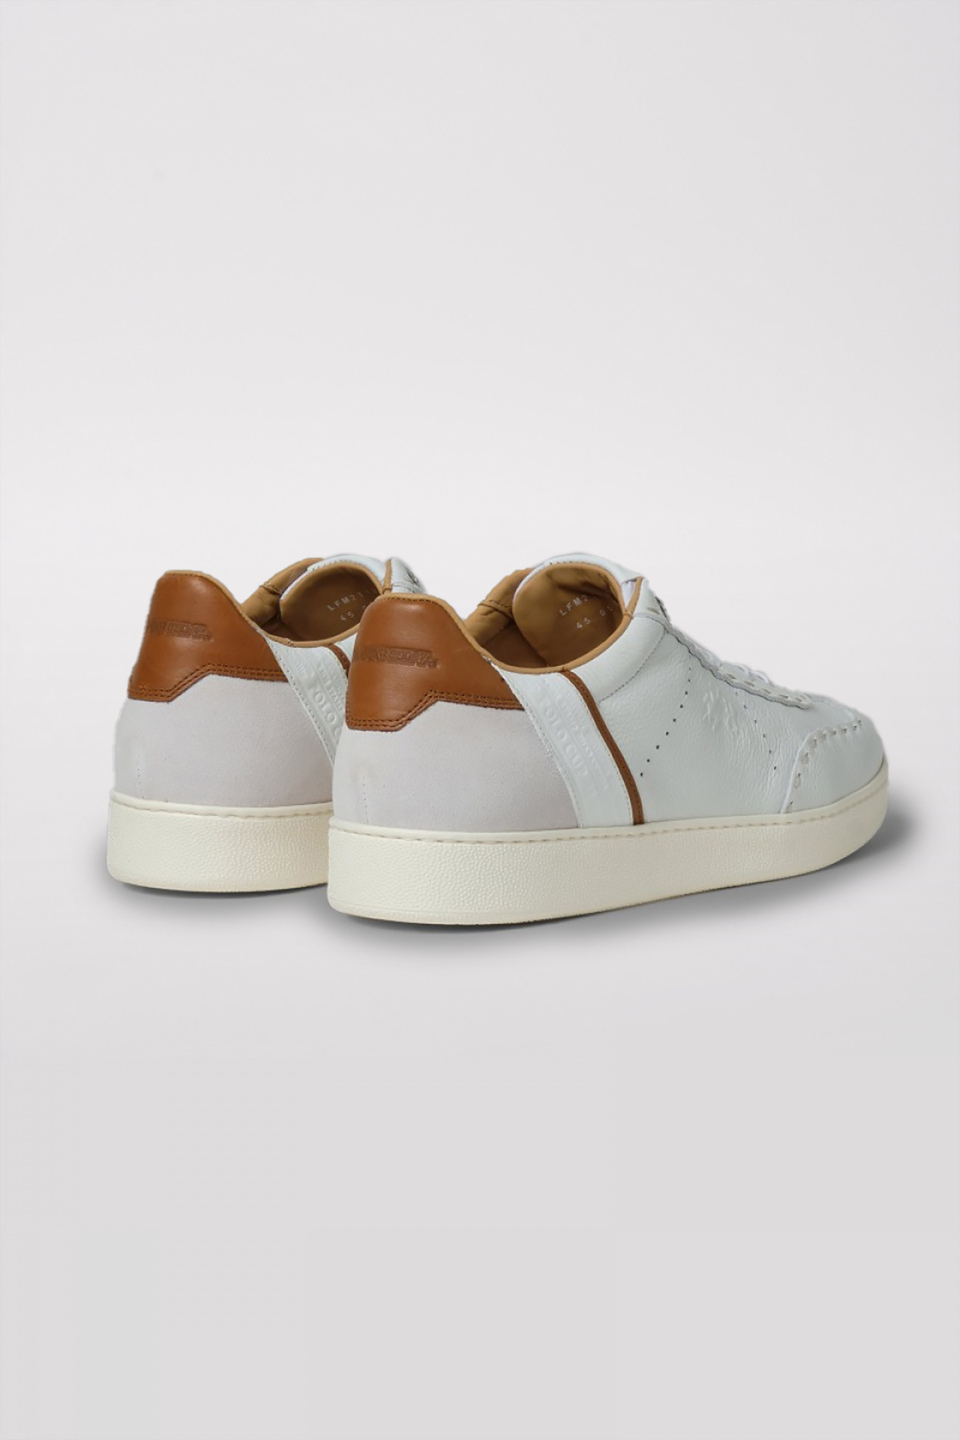 Leather sneakers with a white crepe sole - La Martina - Official Online Shop